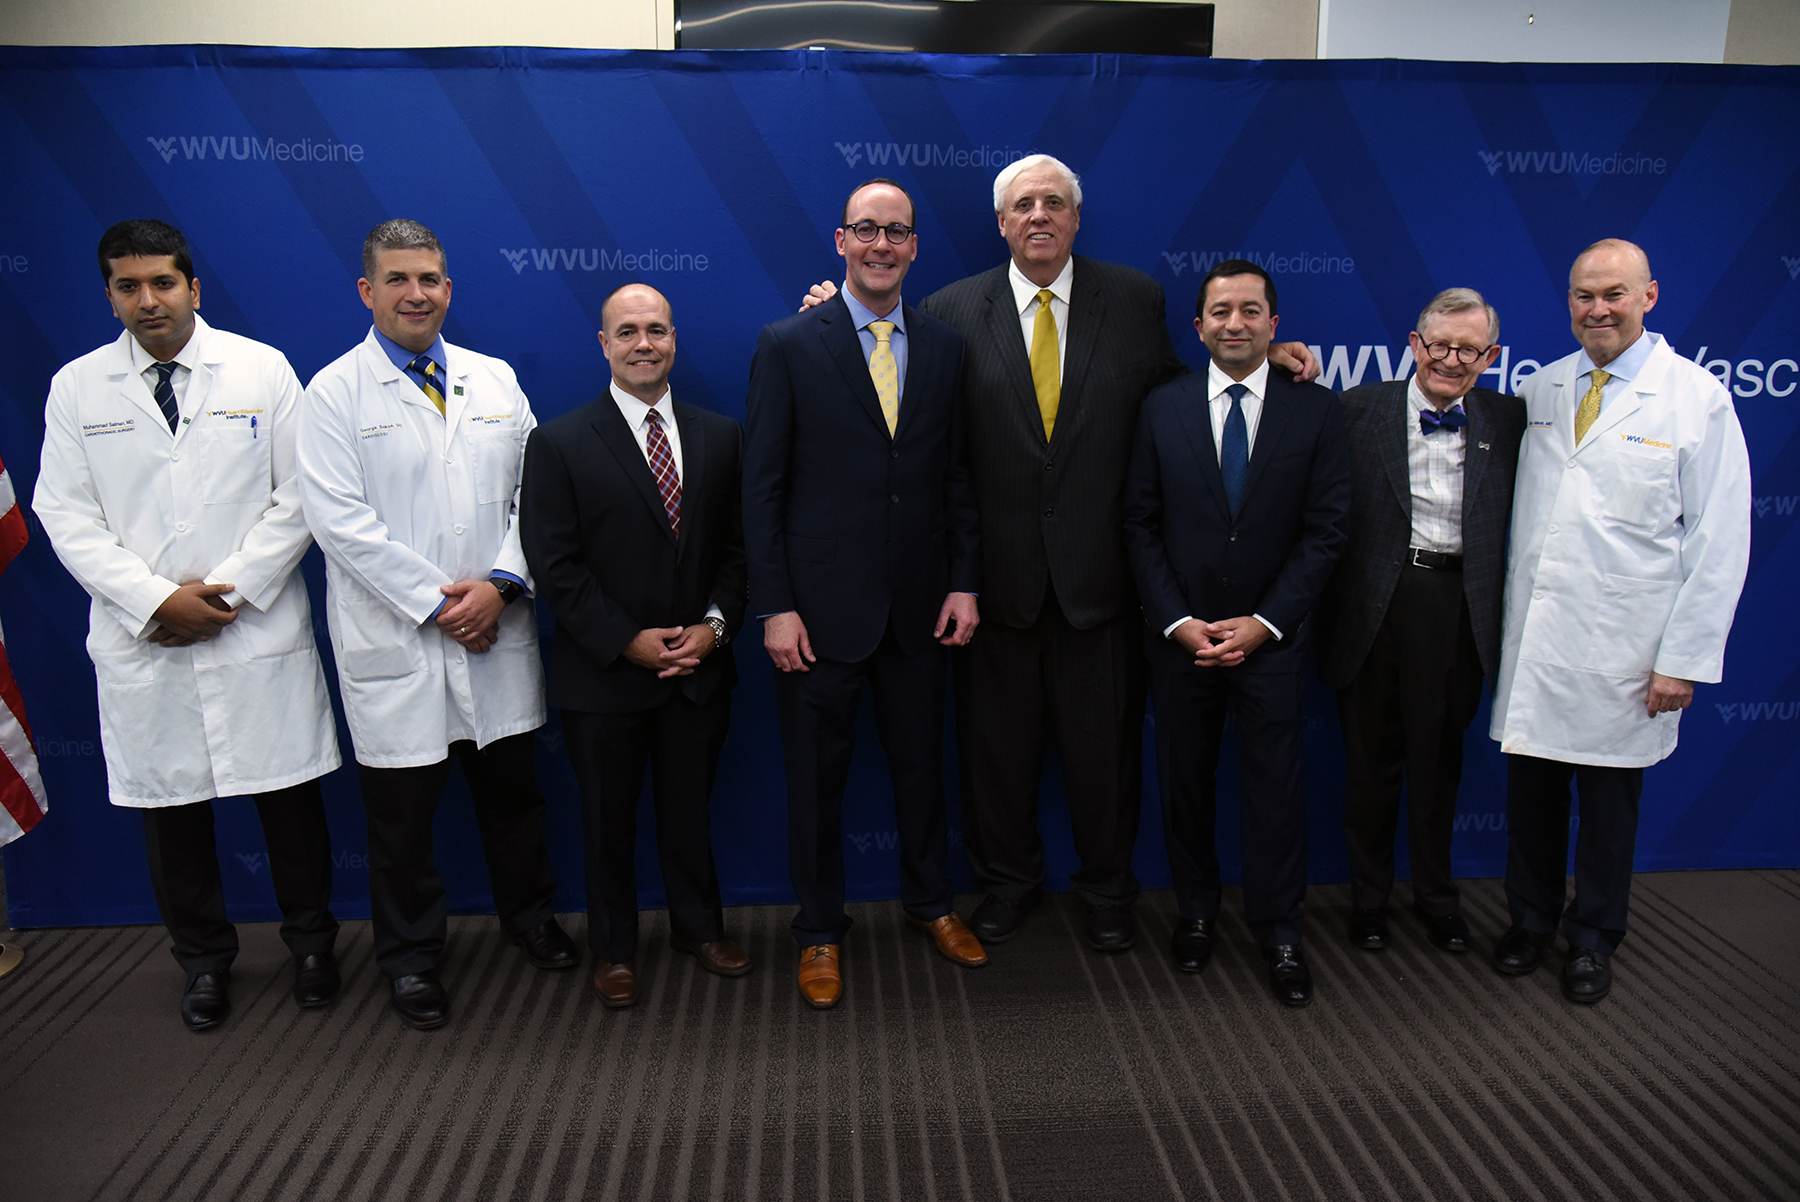 Gov. Jim Justic (fourth from right) joined WVU Medicine officials at a press conference today (Sept. 19) announcing plans to start a heart transplant program at the WVU Heart and Vascular Institute. Pictured with Justice are (from left to right) Muhammad Salman, M.D., cardiothoracic surgeon; George Sokos, D.O., cardiologist; Michael Shullo, associate vice president of transplant services; Albert L. Wright, Jr., president and CEO of the West Virginia University Health System; Justice: Vinay Badhwar, M.D., executive chair of the WVU Heart and Vascular Institute; Gordon Gee, WVU president and chair of the WVU Health System Board of Directors; and Clay B. Marsh, M.D., vice president and executive dean for WVU Health Sciences.